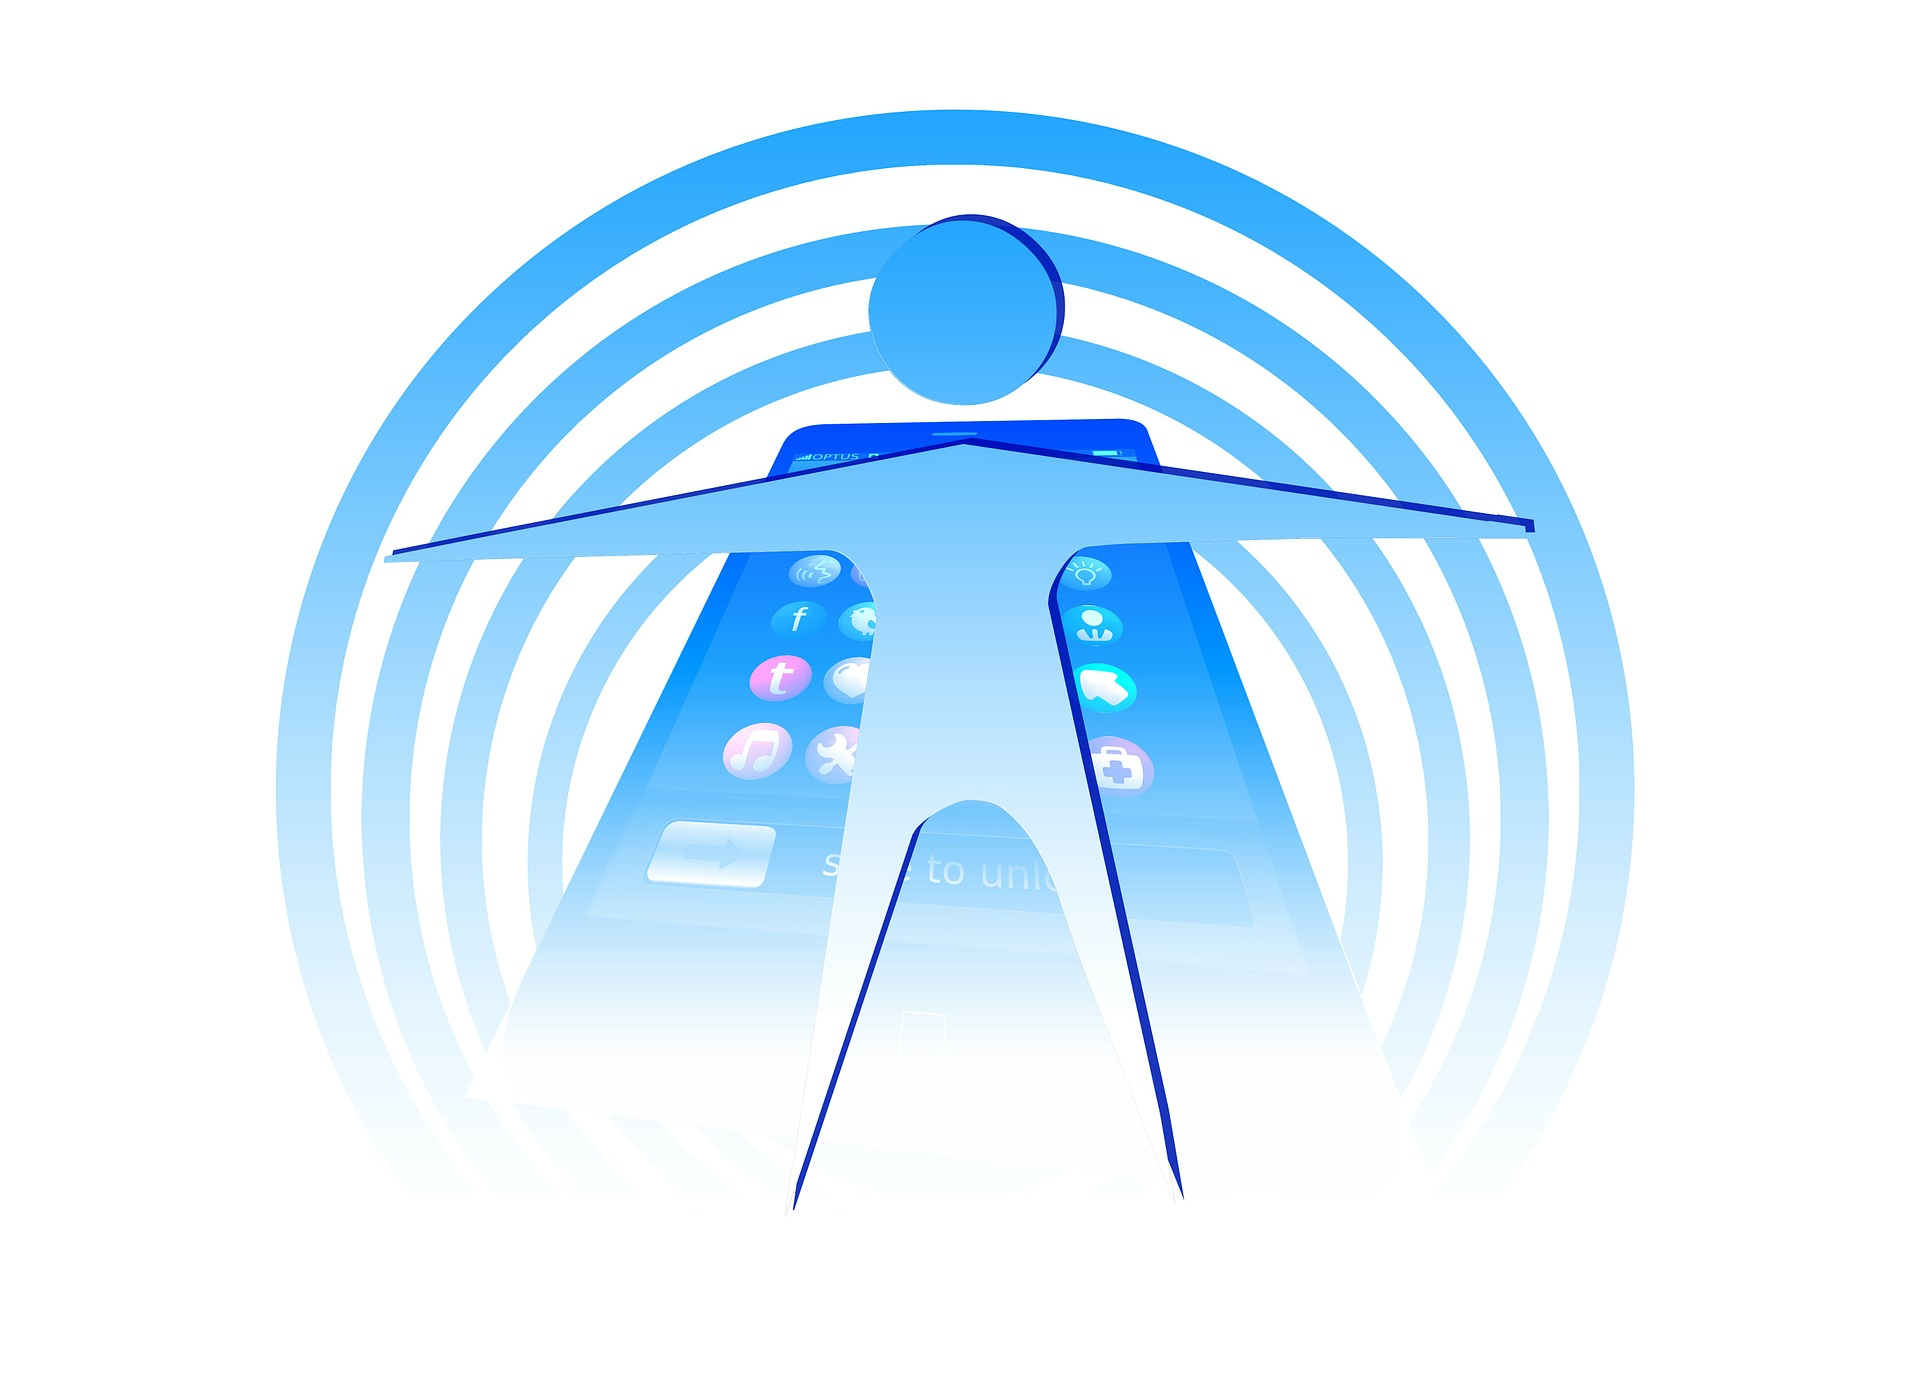 EMF radiation and 5G - How to protect yourself